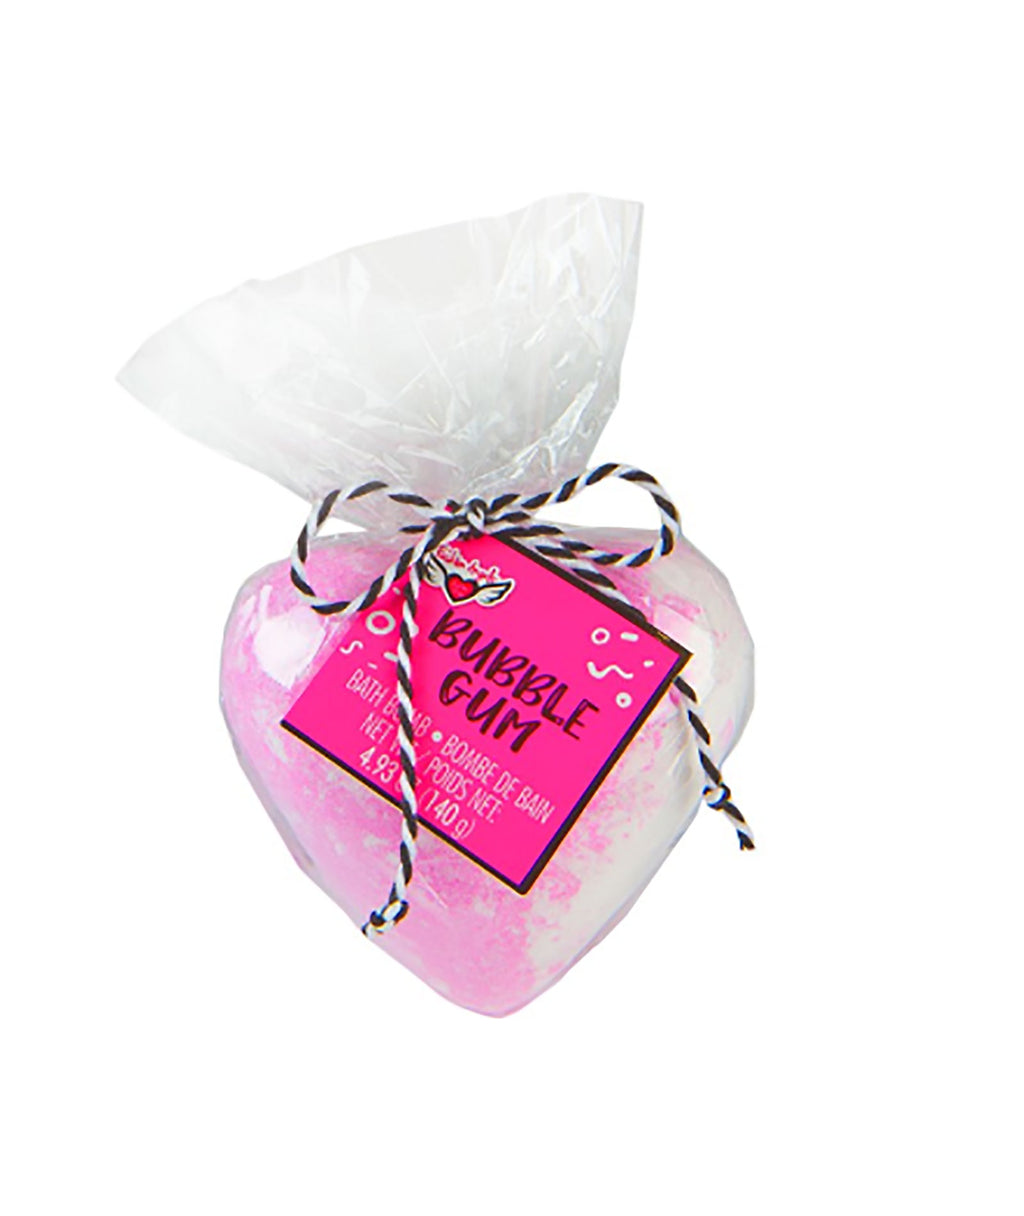 Fashion Angels Bubble Gum Bath Bomb